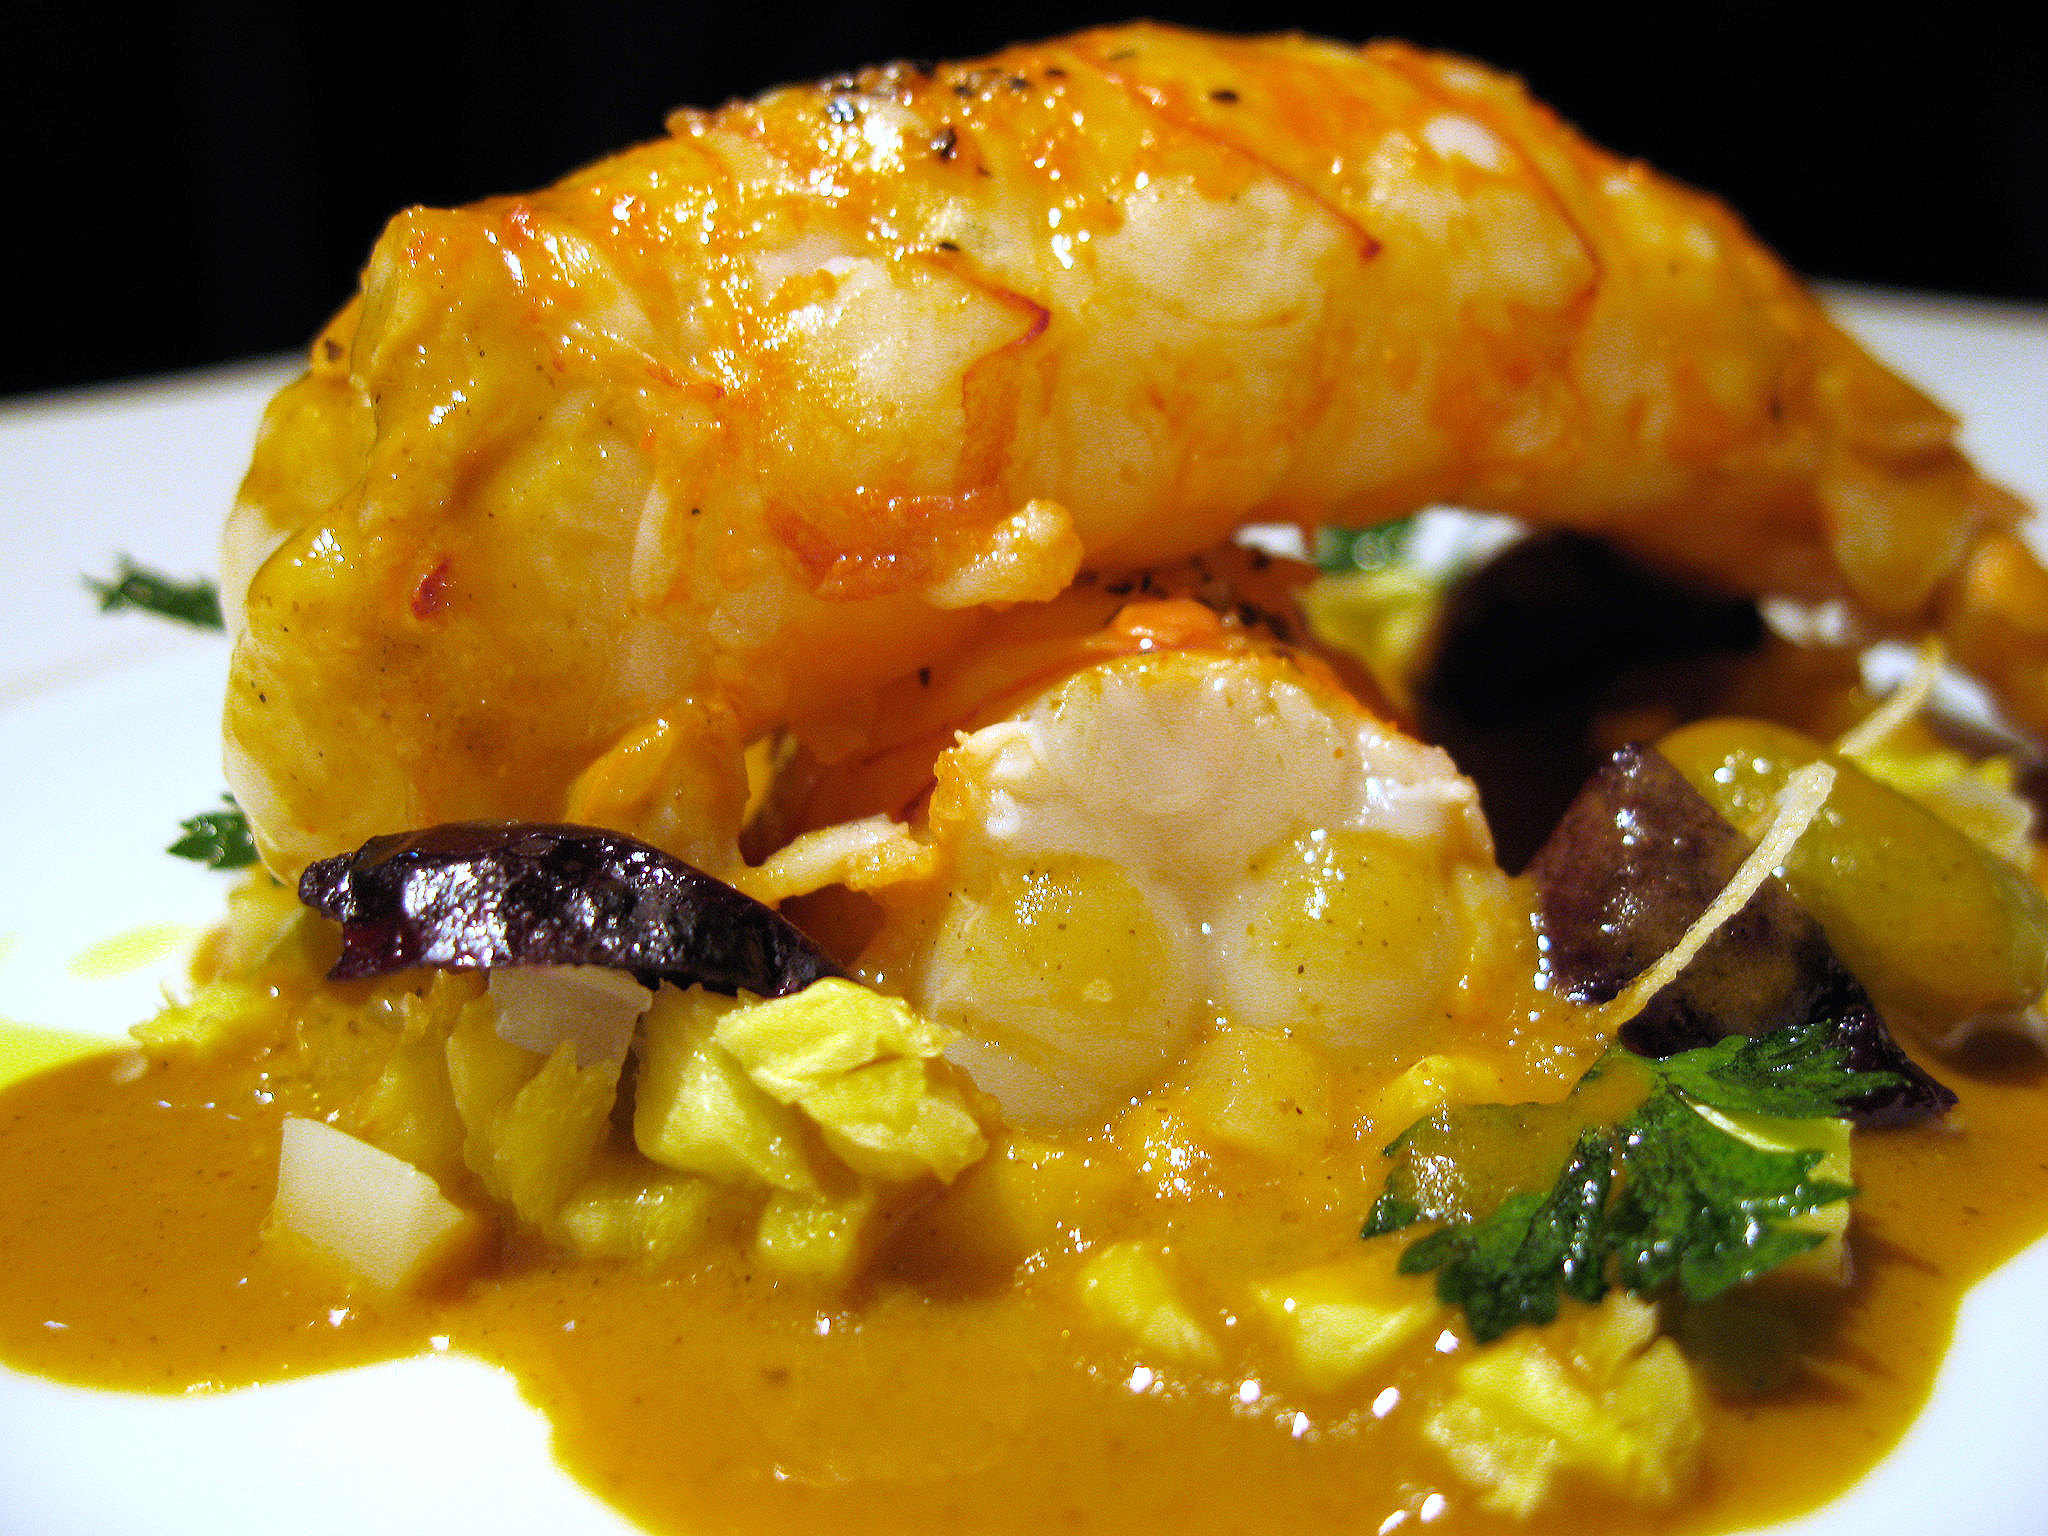 Beige, Tokyo - Langoustines roasted with black pepper, celery/pineapple flavoured in a coco/curry sauce.